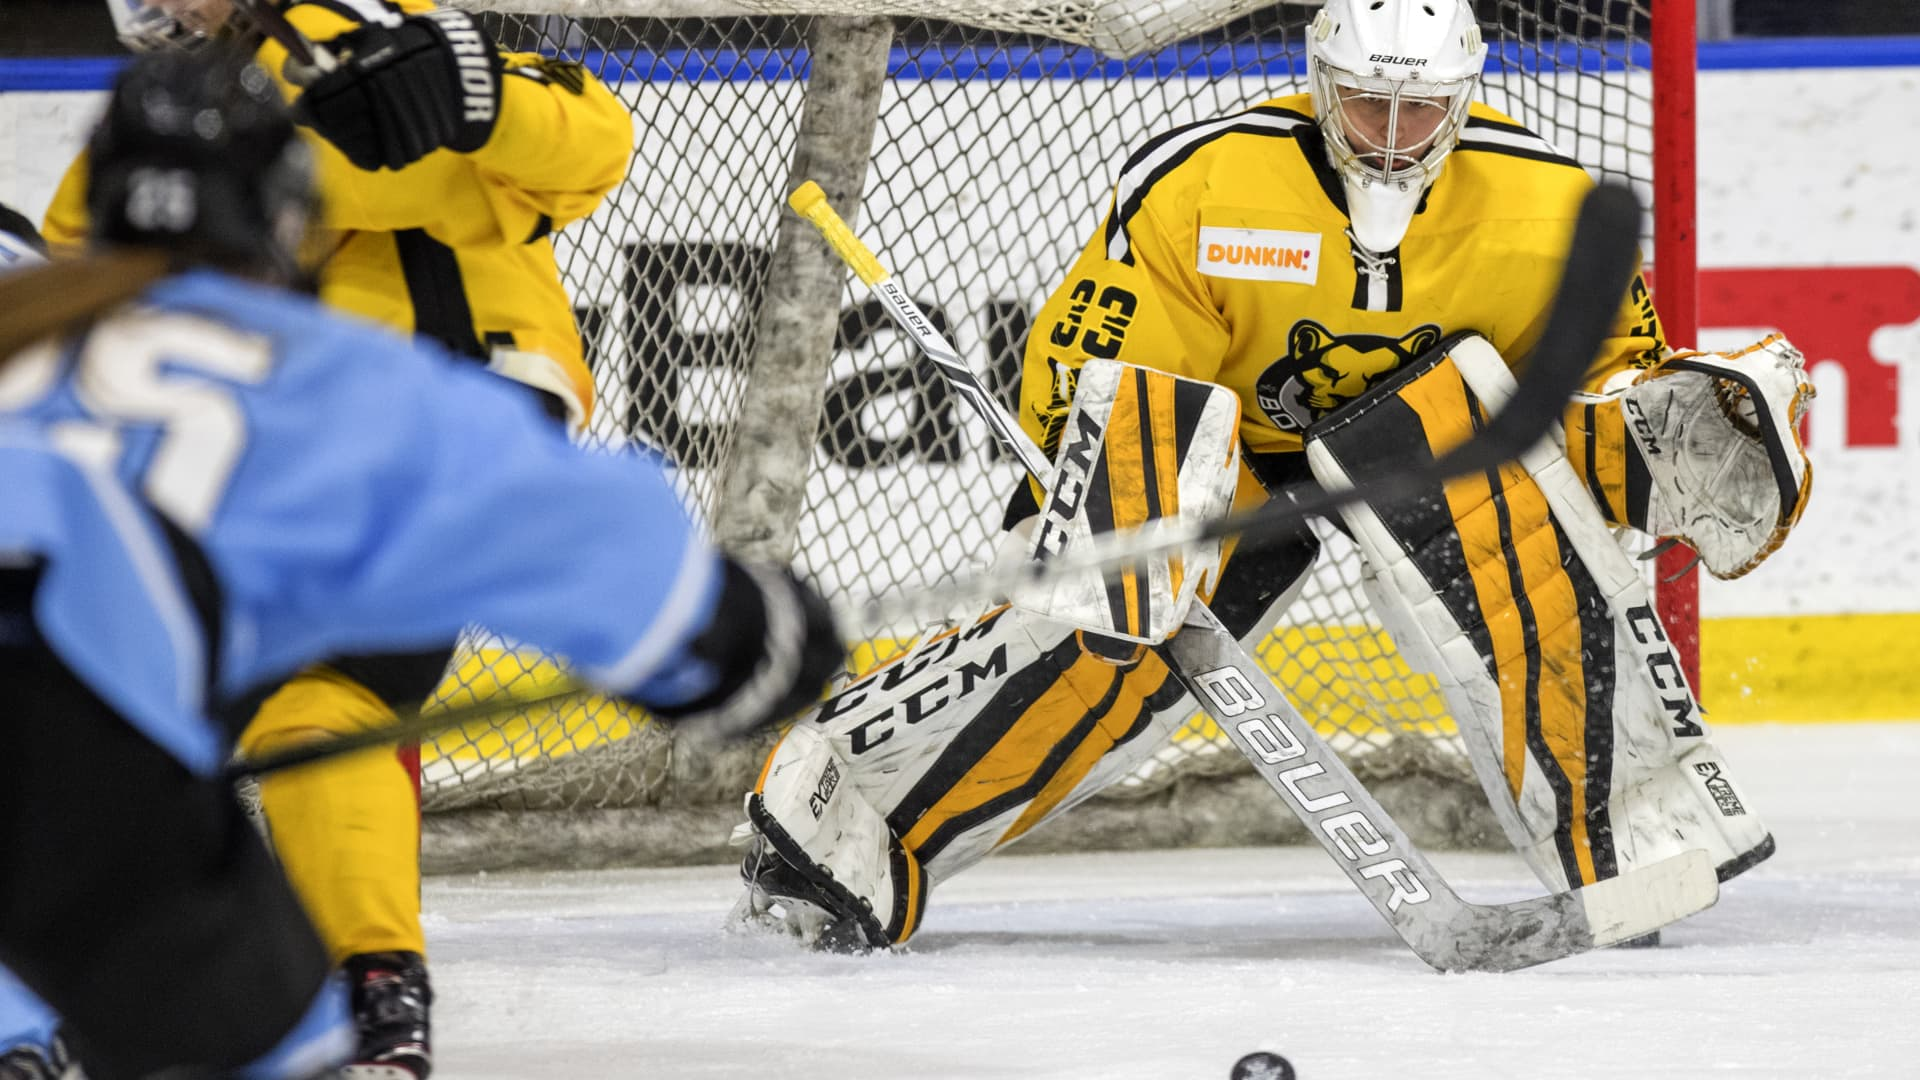 Katie Burt, goaltender for the Boston Pride, plays against the Buffalo Beauts in an NWHL playoff game at Harborcenter in Buffalo, NY on March 9, 2019.